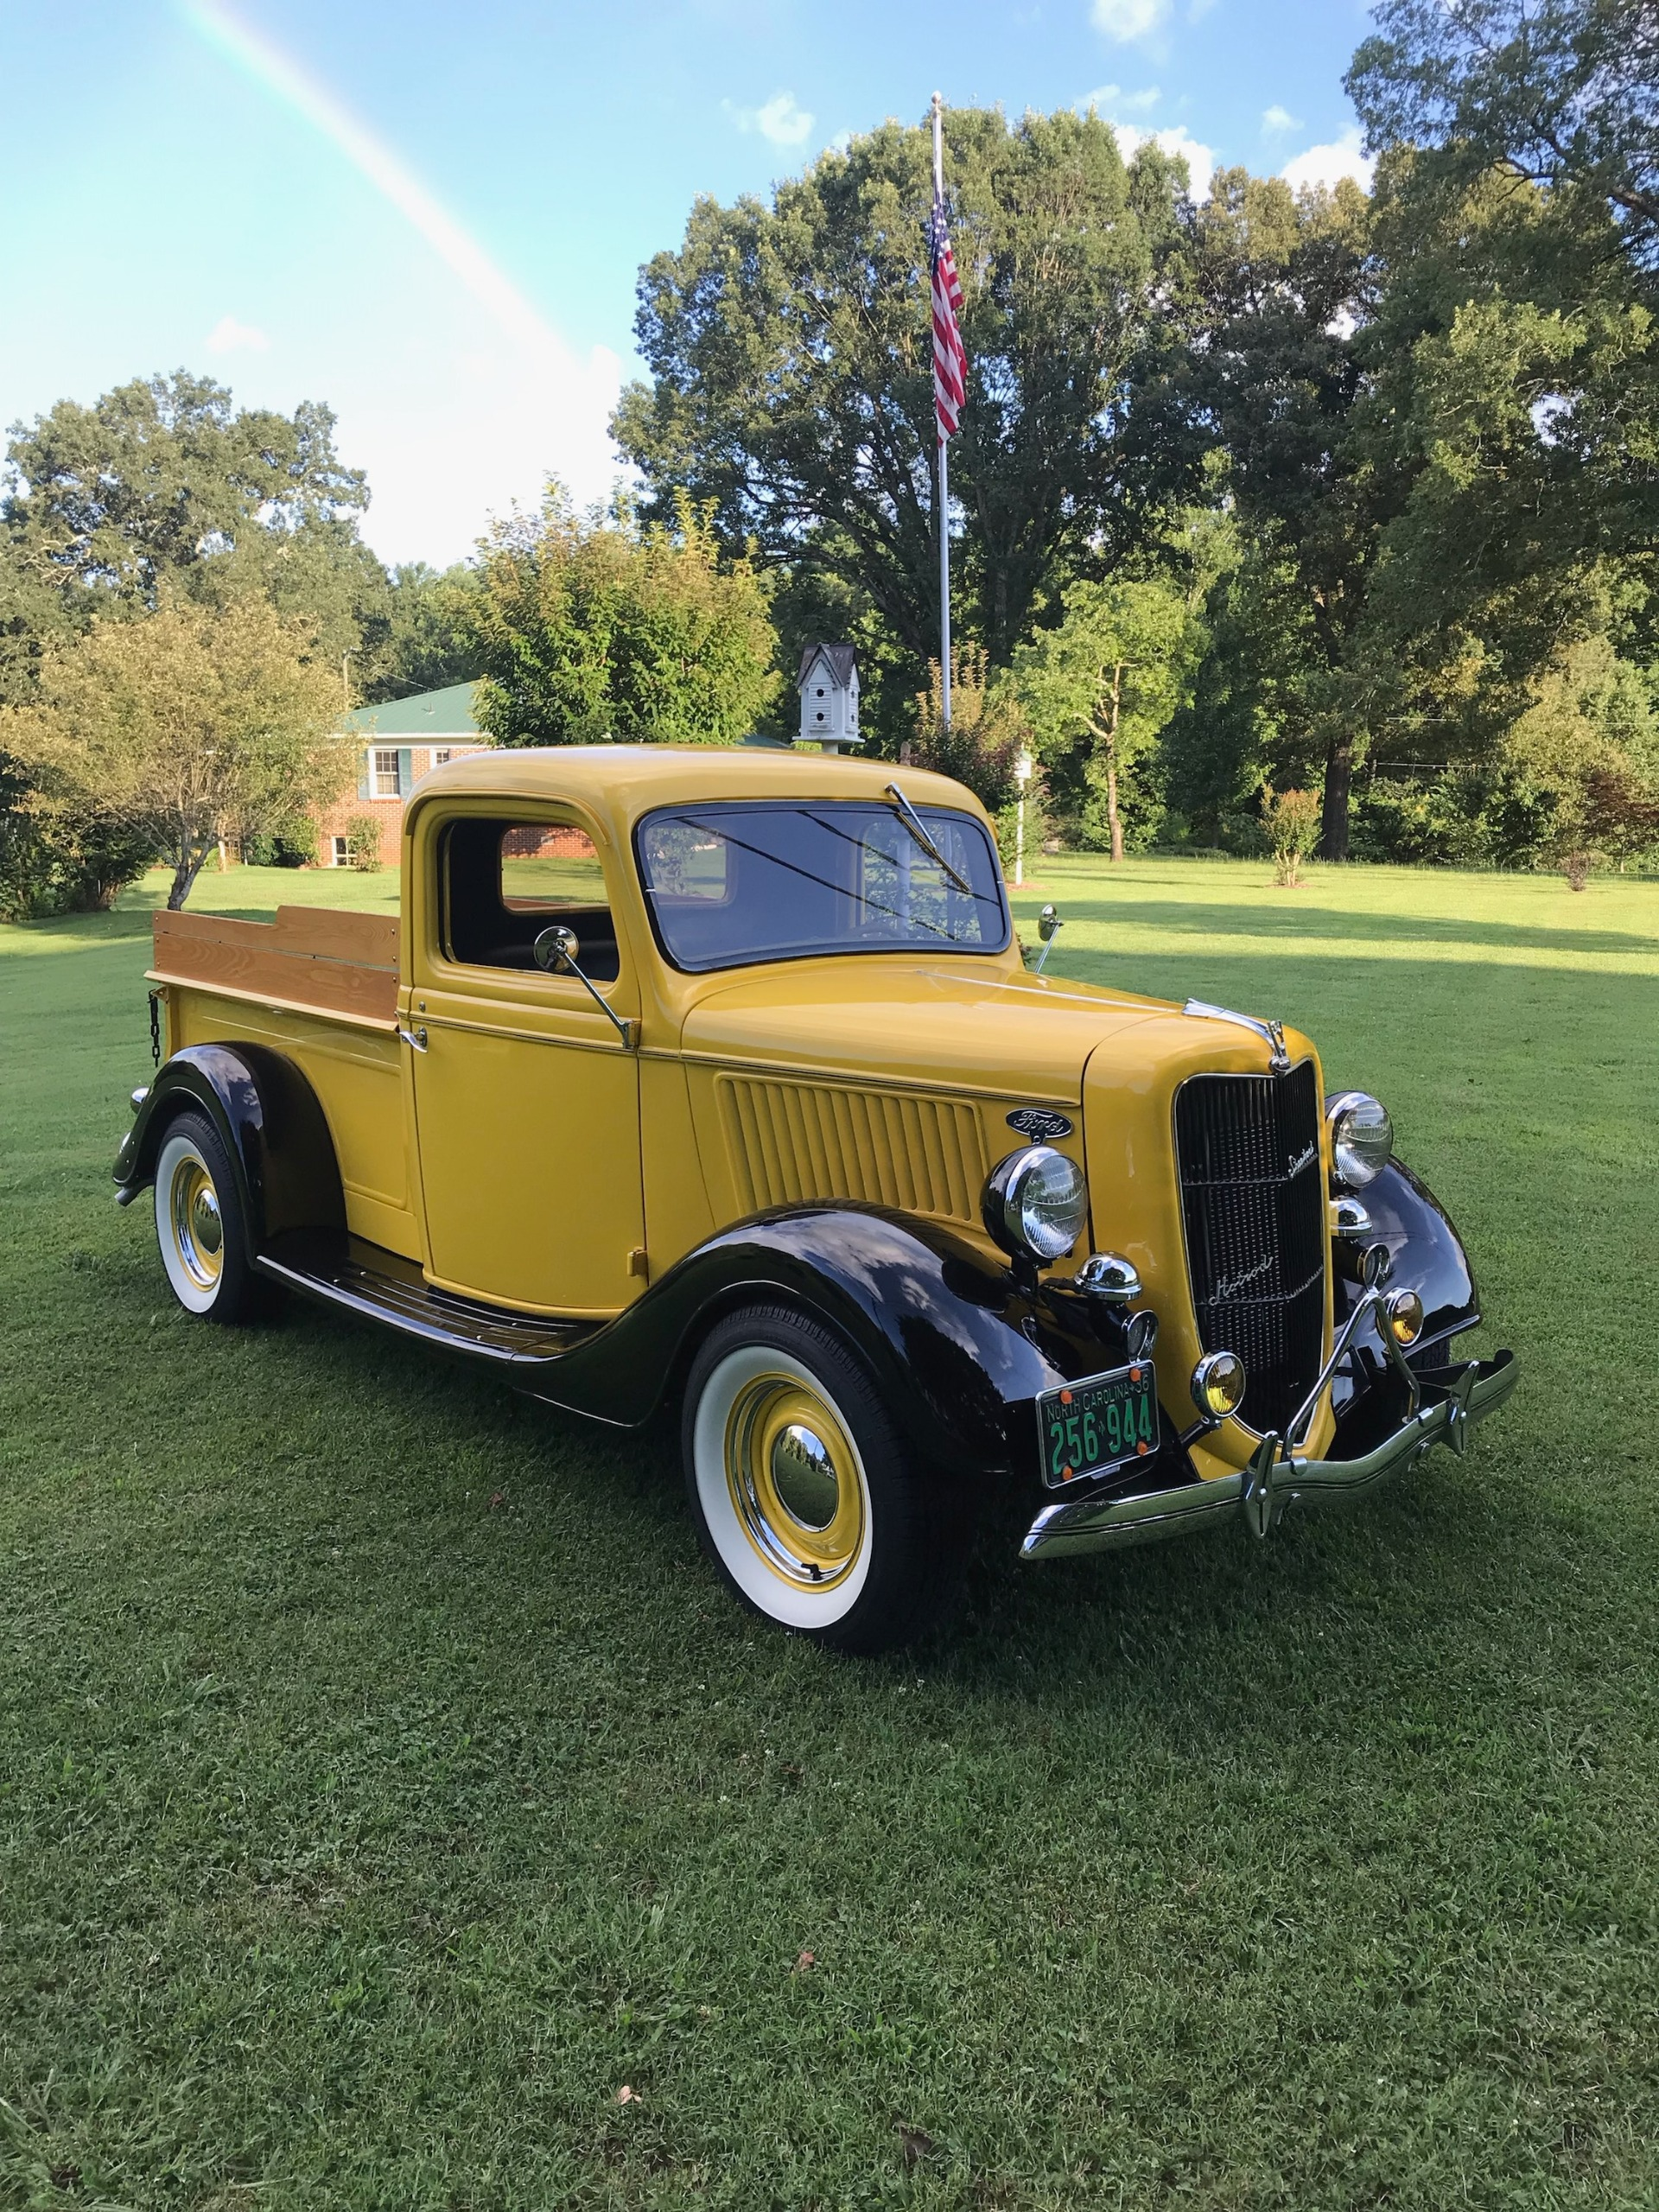 Used 1936 Ford Half Ton Pickup Truck